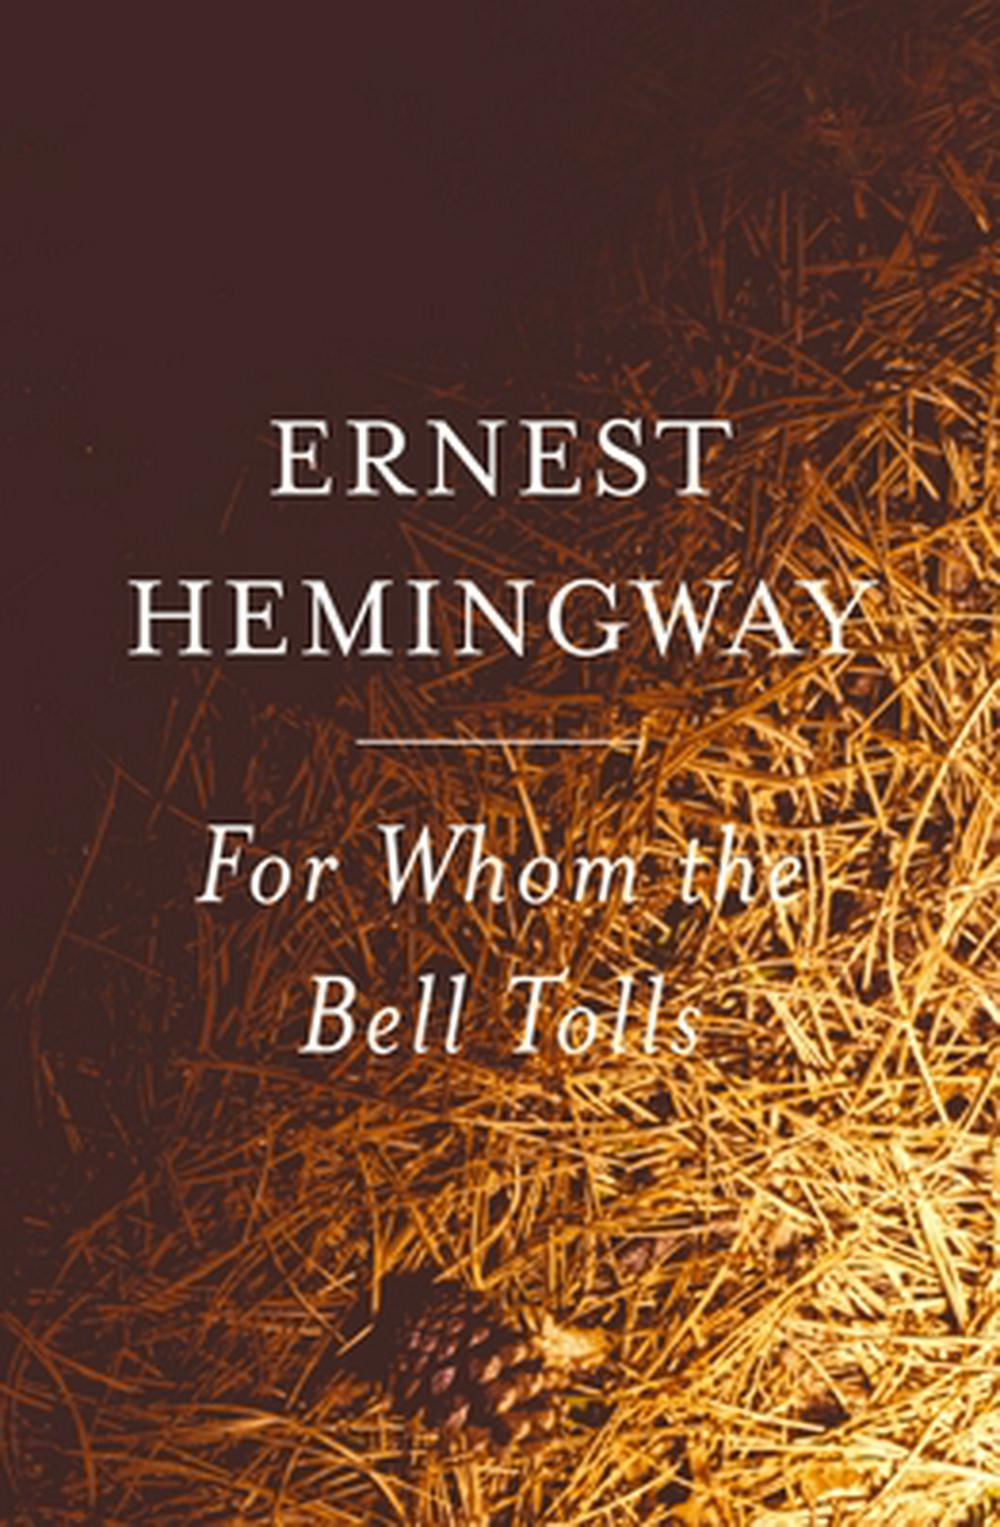 an experience in war in for whom the bell tolls by ernest hemingway Ernest hemingway's 1940 novel, for whom the bell tolls, is a classic war romance (that's a war drama and a romance, in one) set in the mountains of spain in 1937, it tells the story of robert jordan, an american fighting for the republicans (that's one side of the spanish civil war, not the.